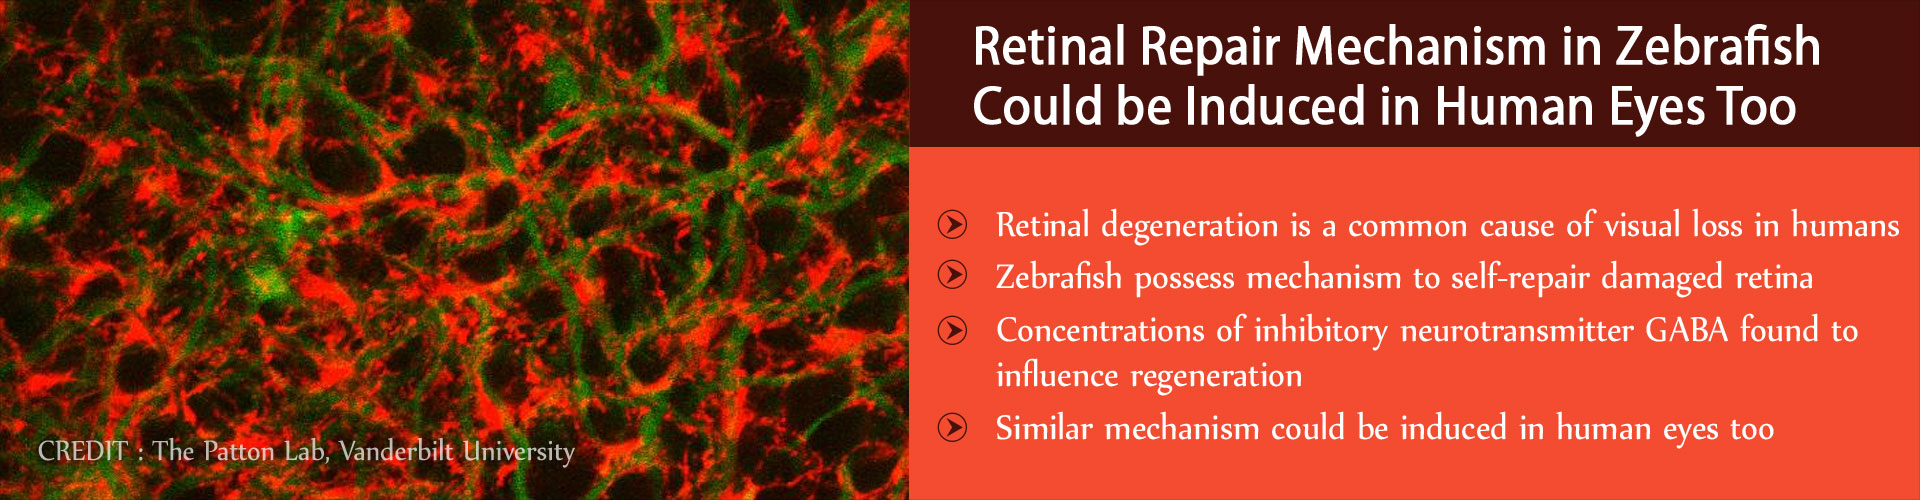 Retinal Regeneration Mechanism in Zebrafish Could be Induced in Human Eyes